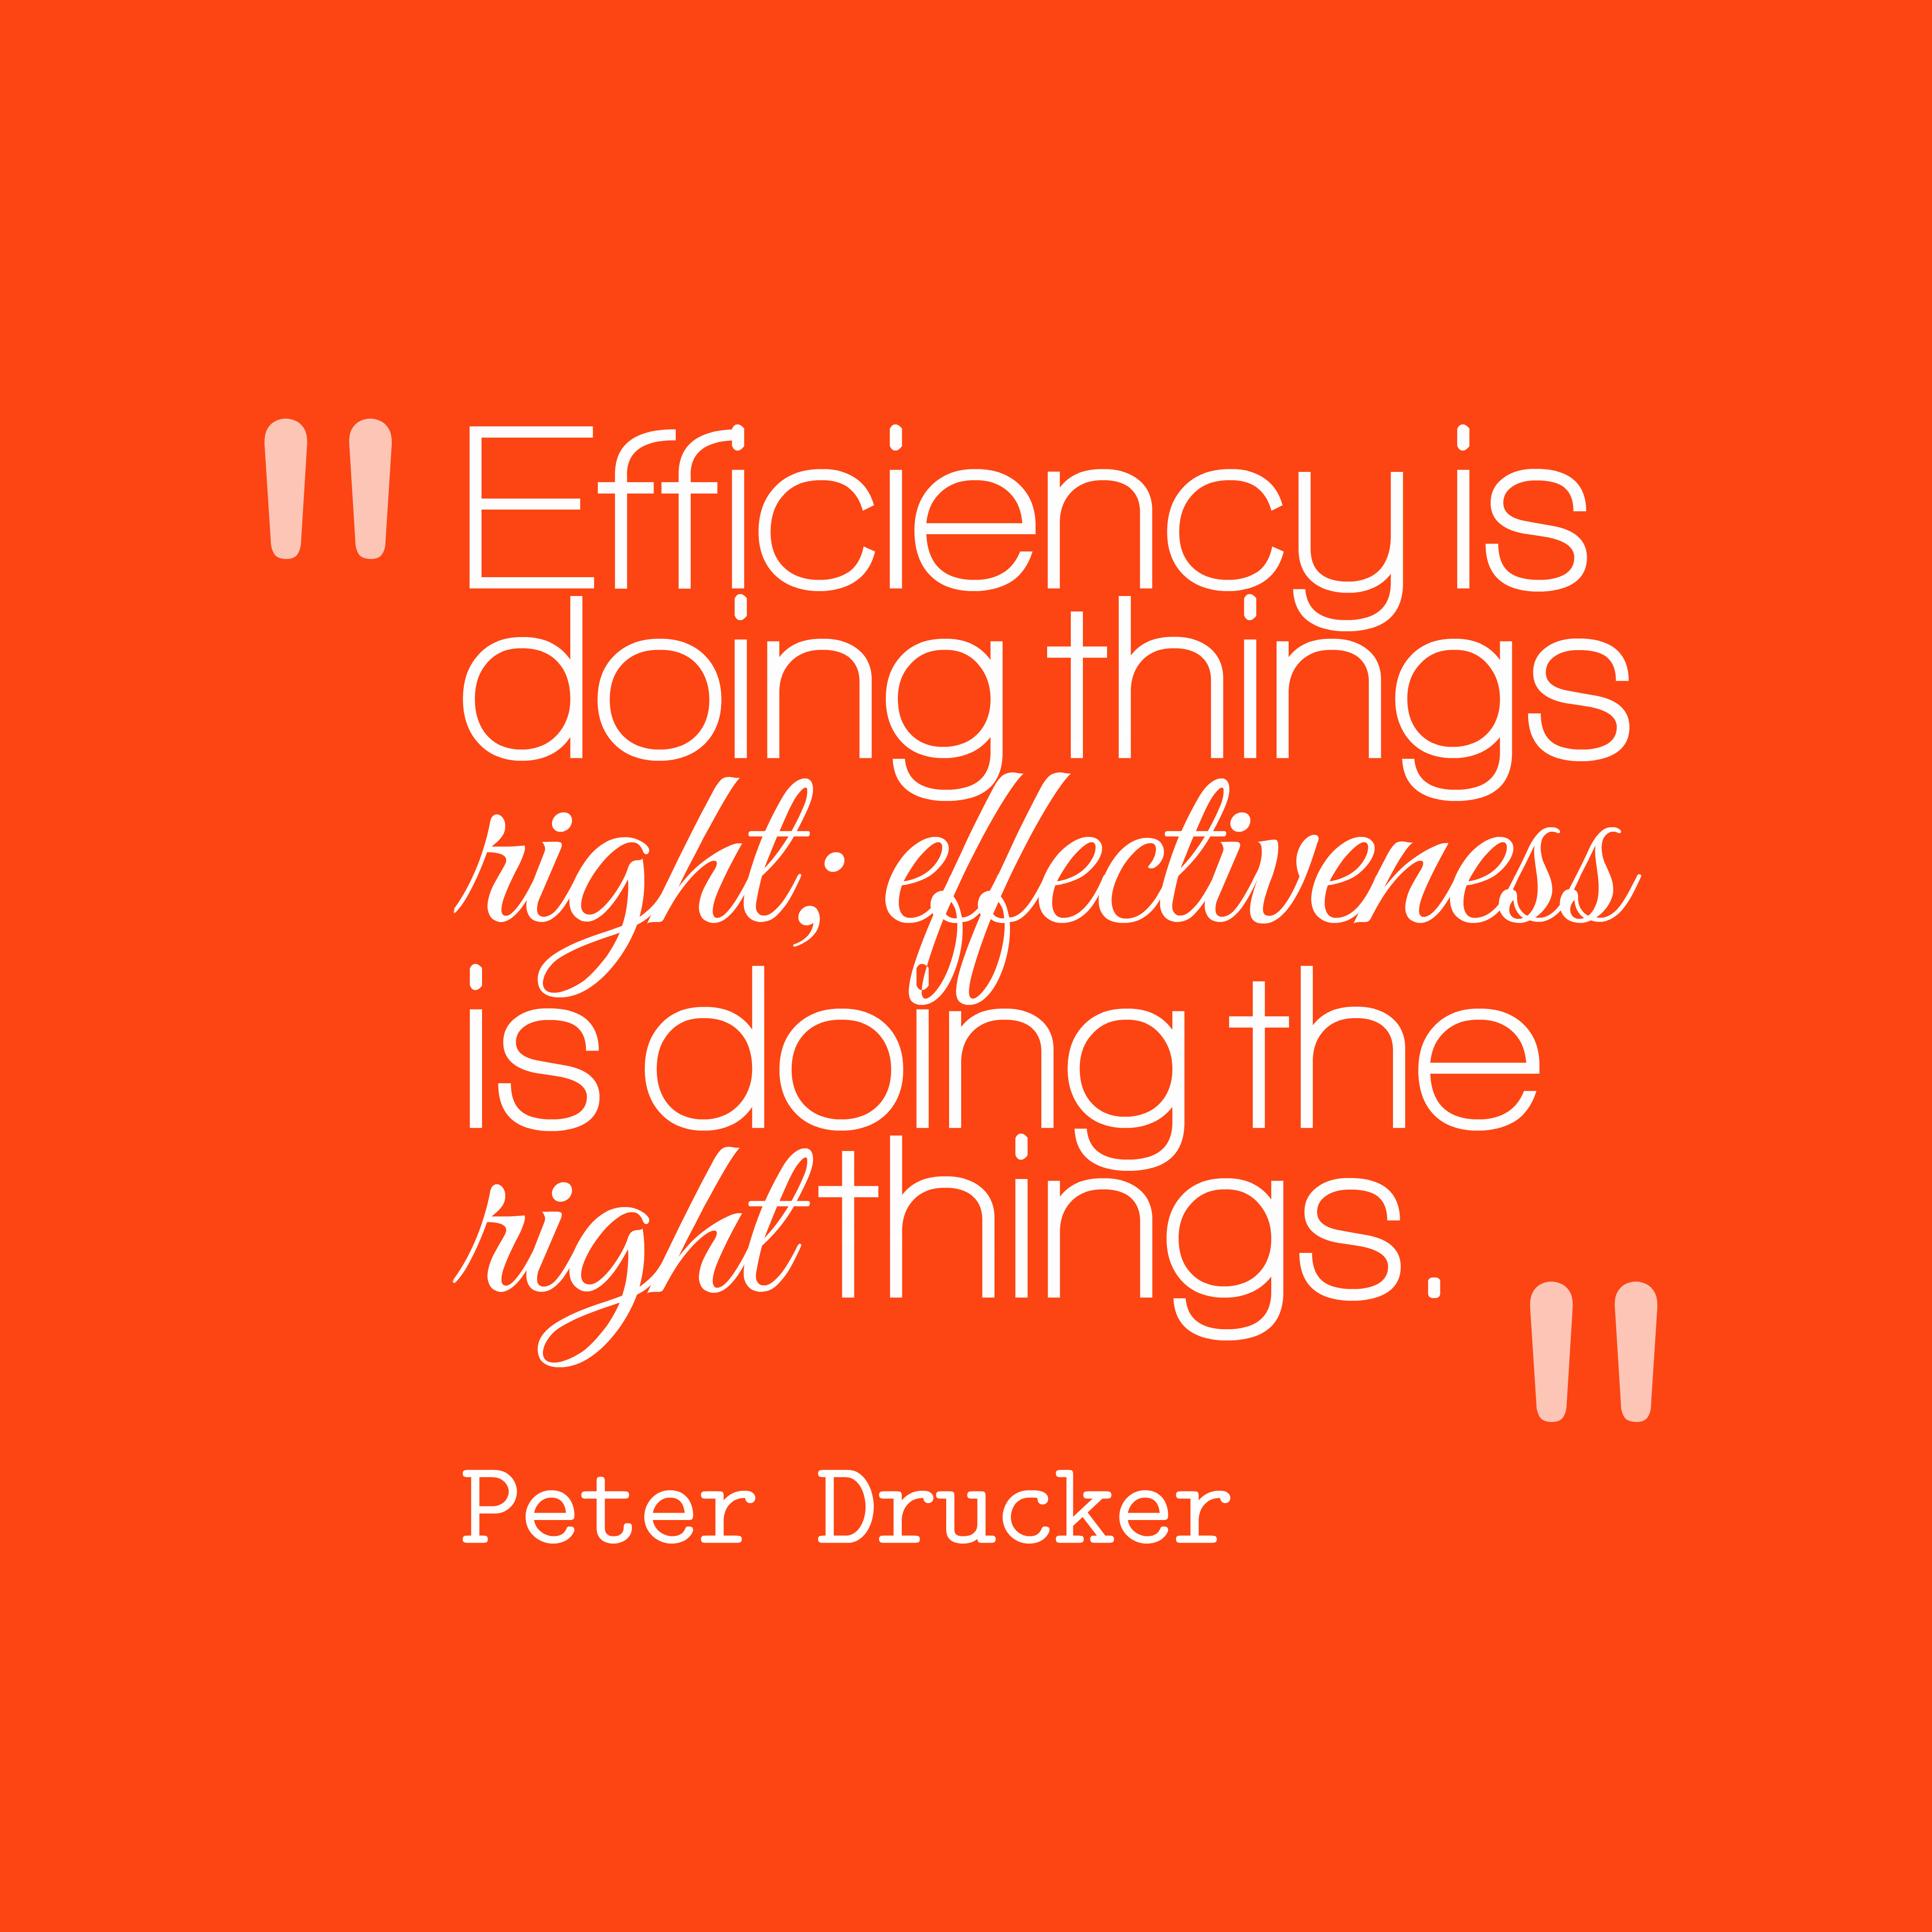 Peter Drucker Quote About Effixiency